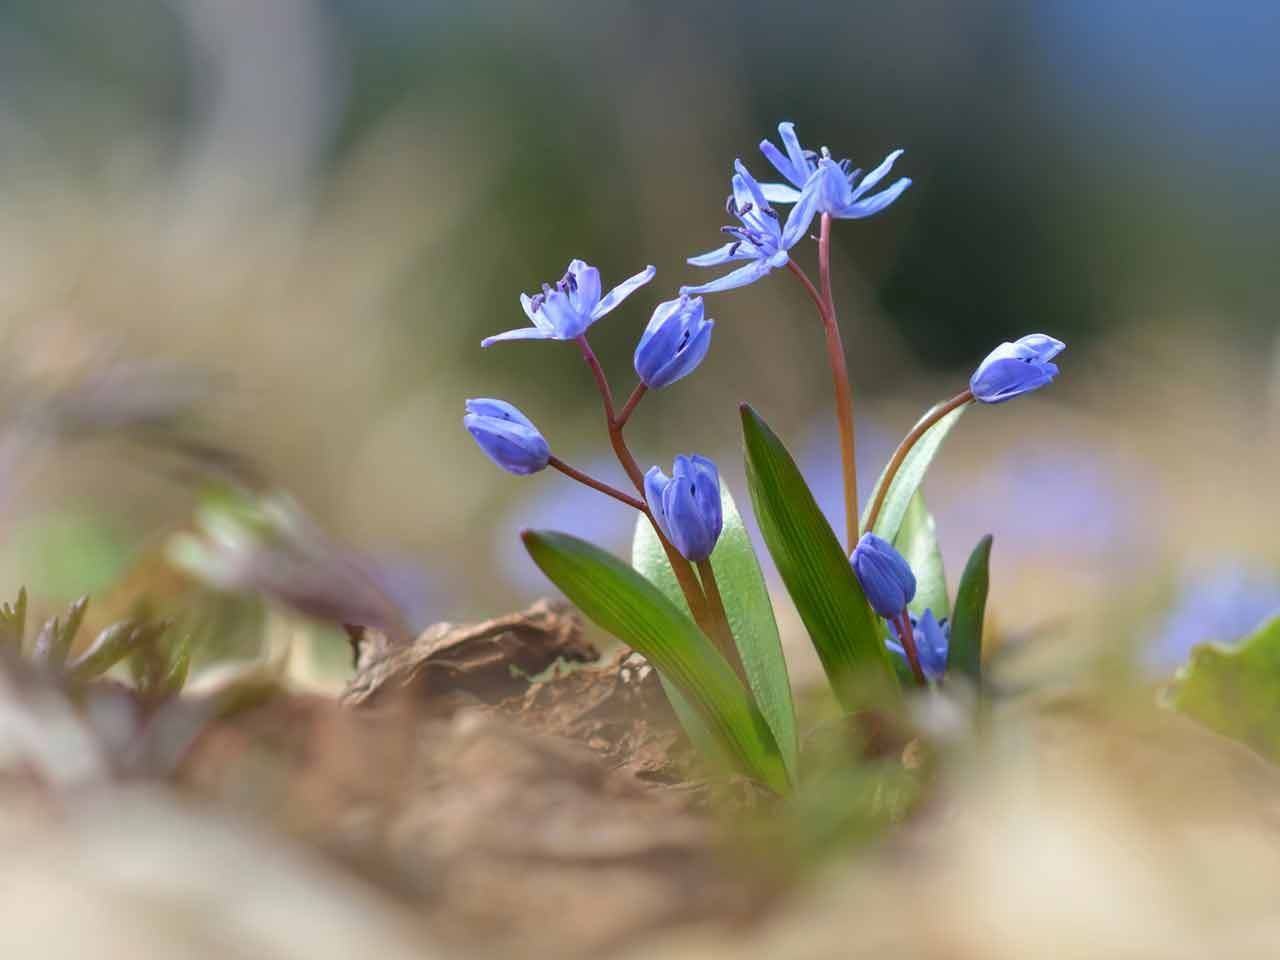 Scilla auntie dogma s garden spot - Scilla How To Grow Little Blue Bulbs So Lovely In Spring